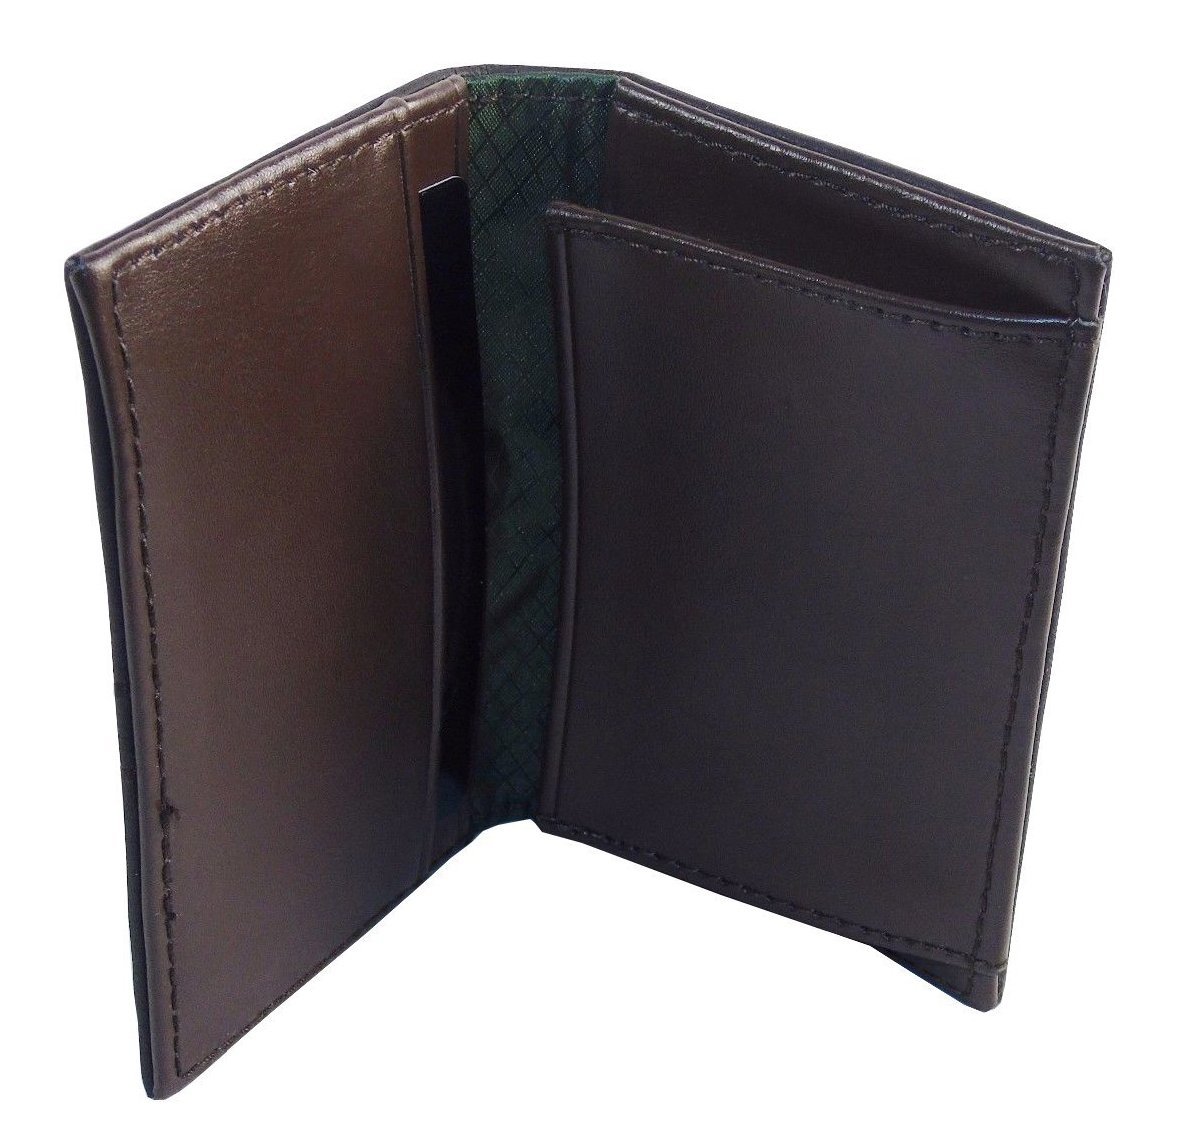 Amazon.com: Buxton Business Card Wallet - Chocolate Brown, Faux ...